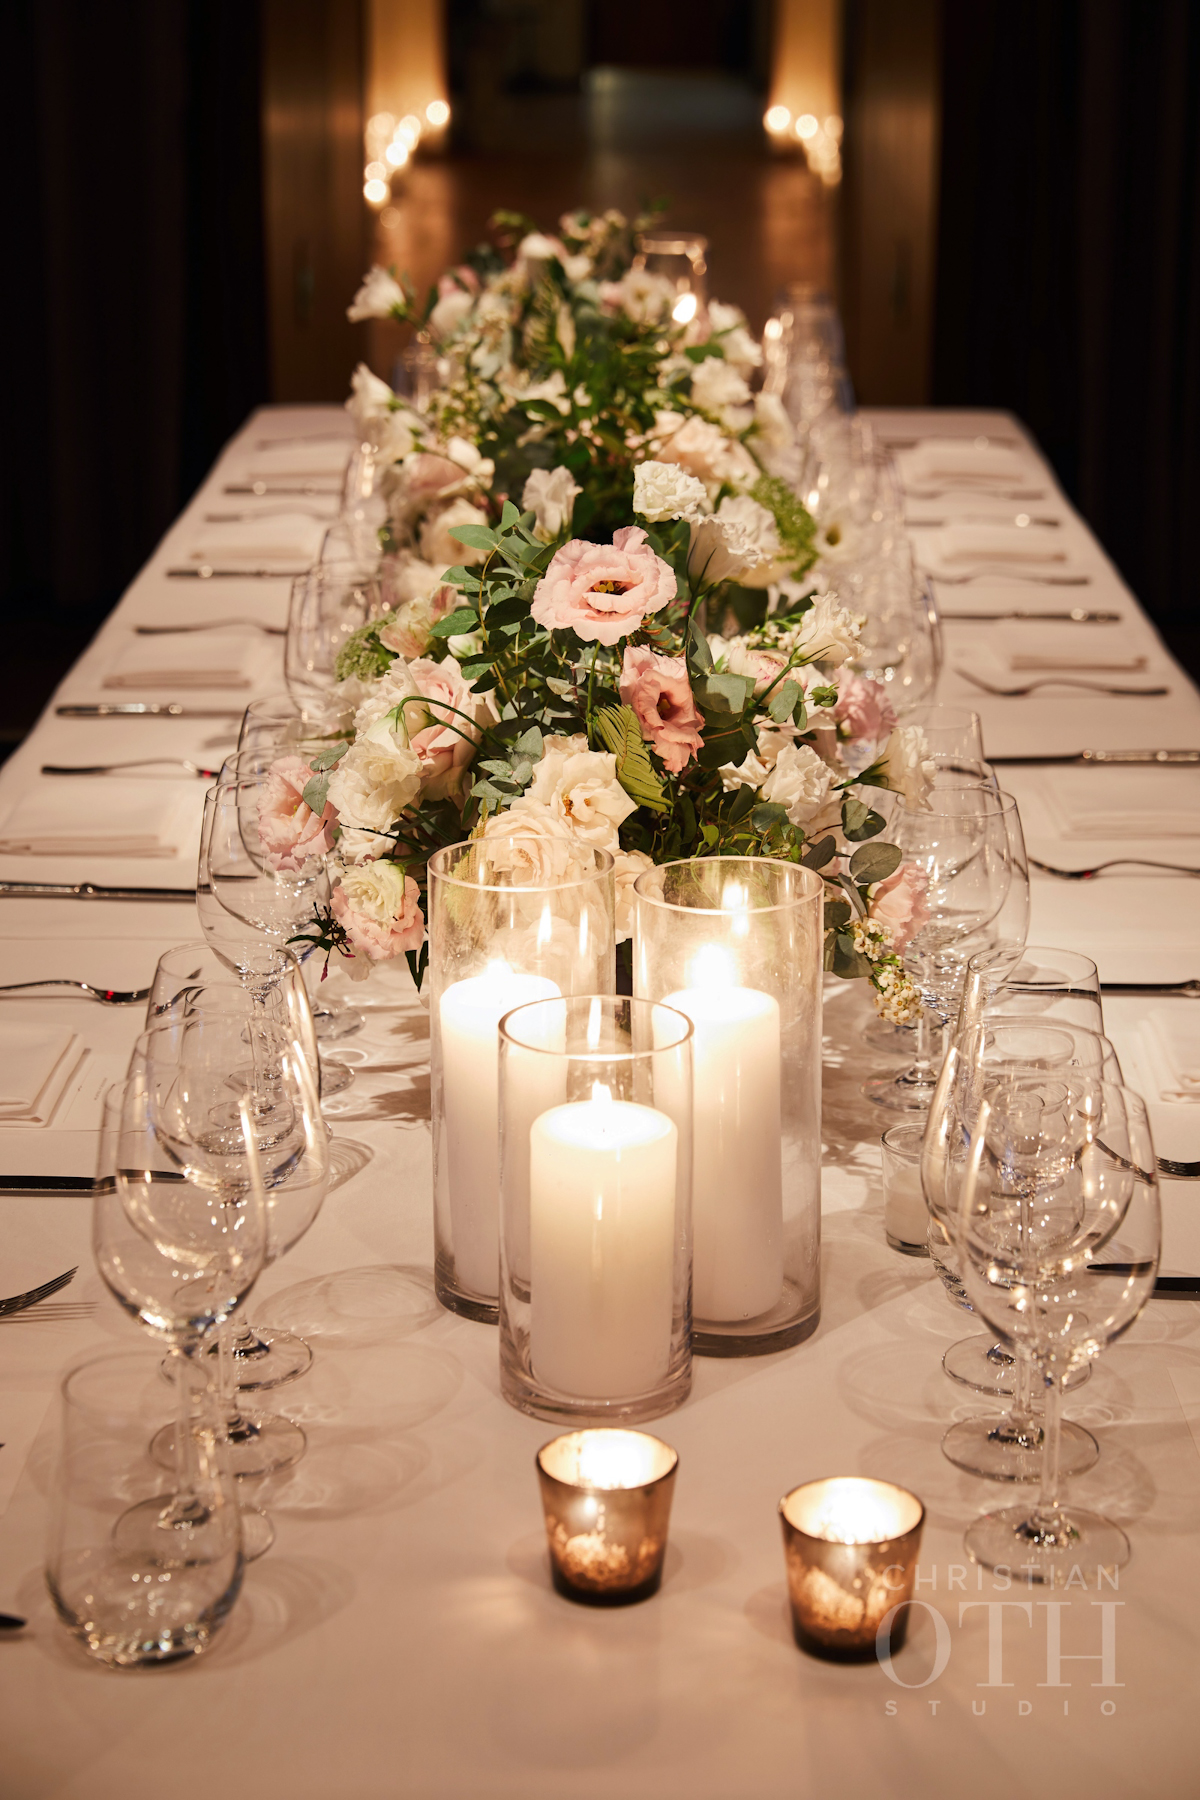 Blue Hill at Stone Barns wedding with pillar candles and flowers